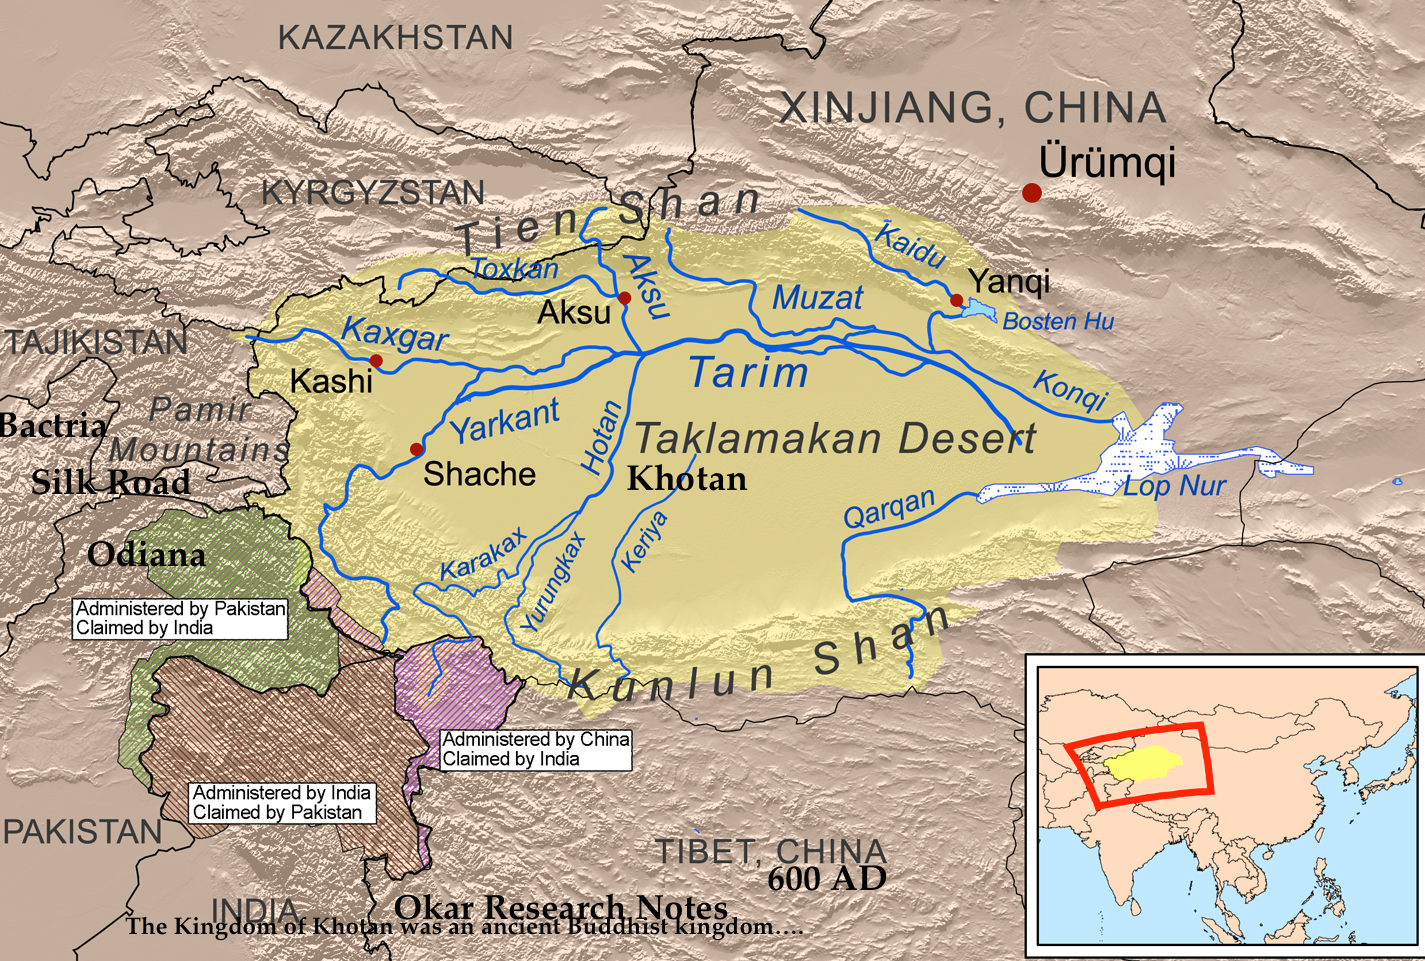 A map of the ancient Buddhist Kingdom of Khotan